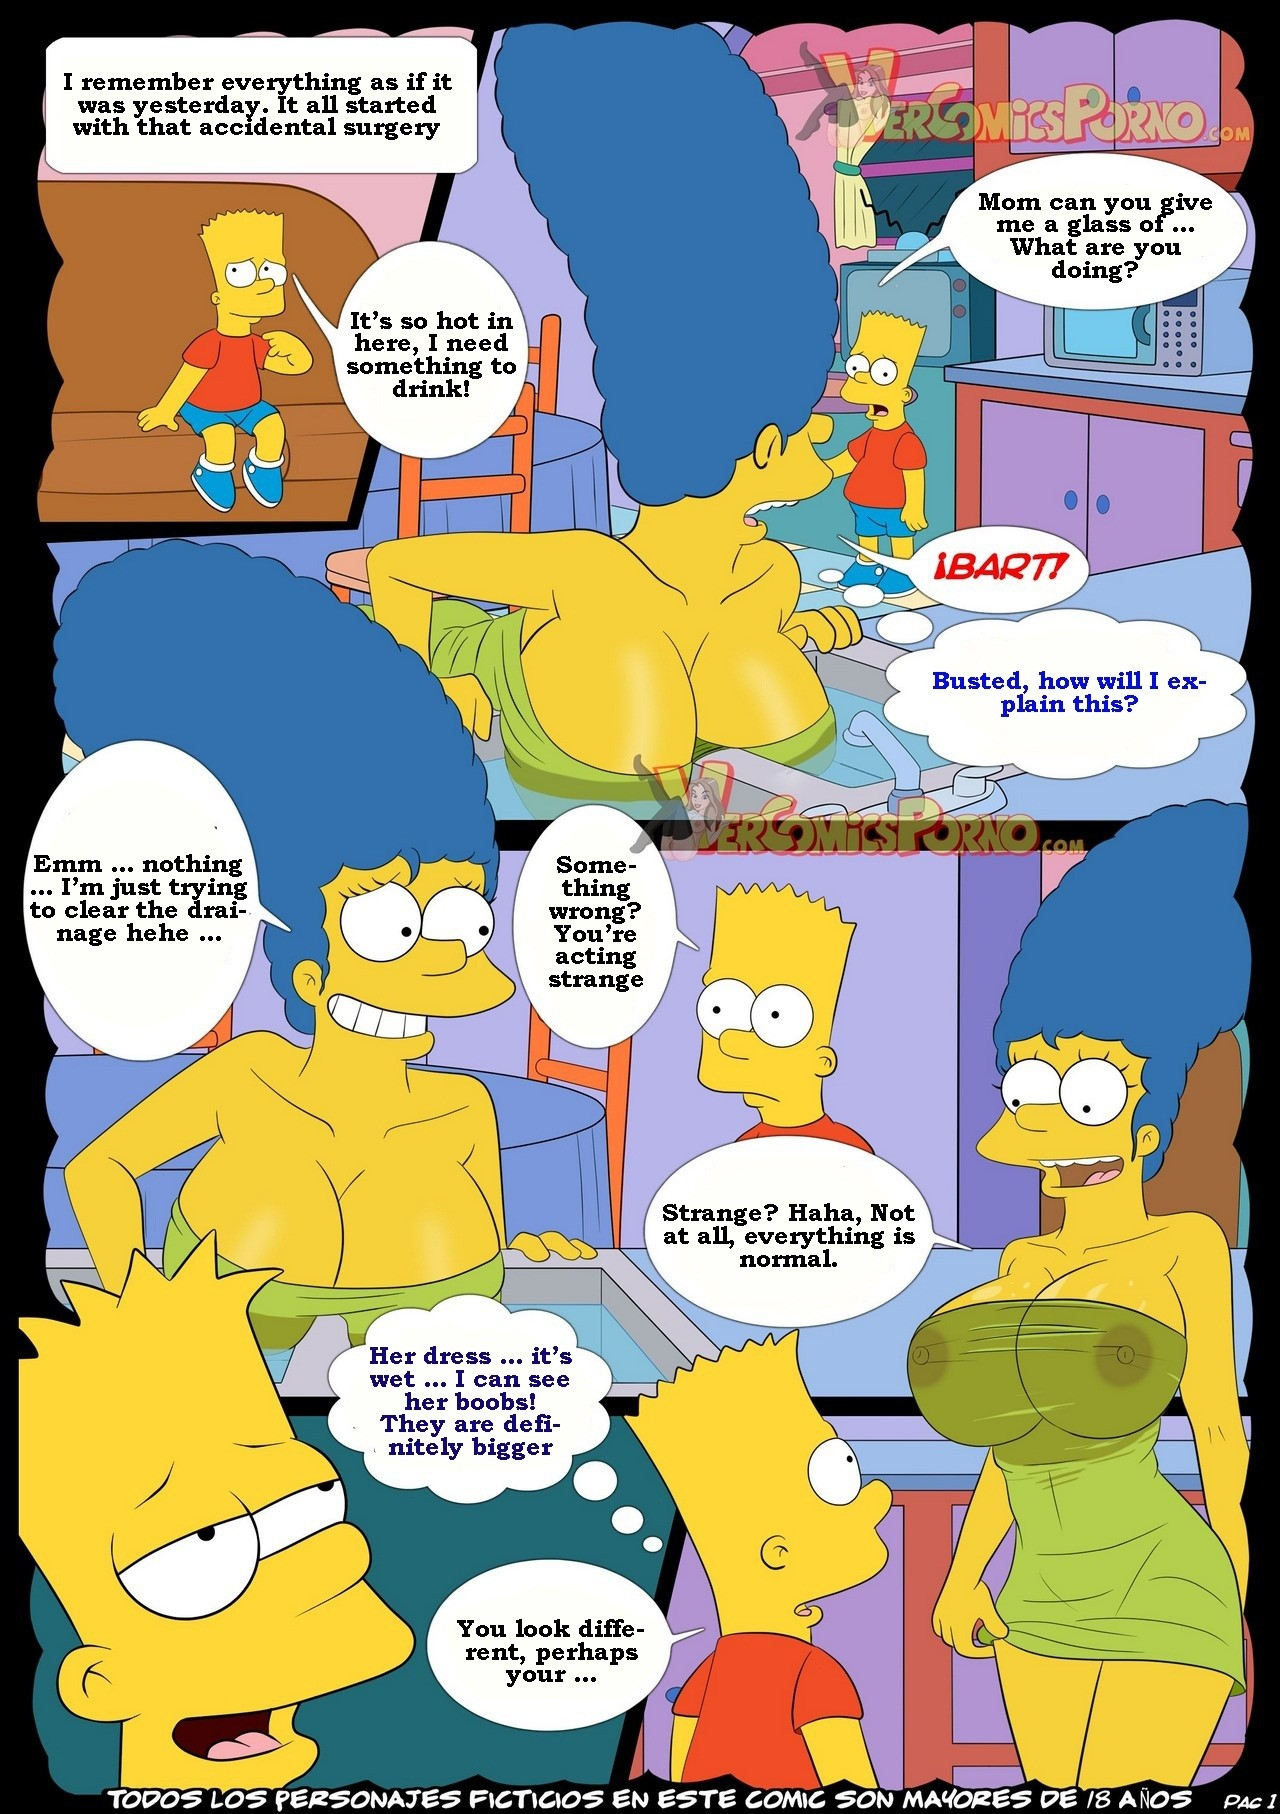 2 38 - The Simpsons. Part 3.